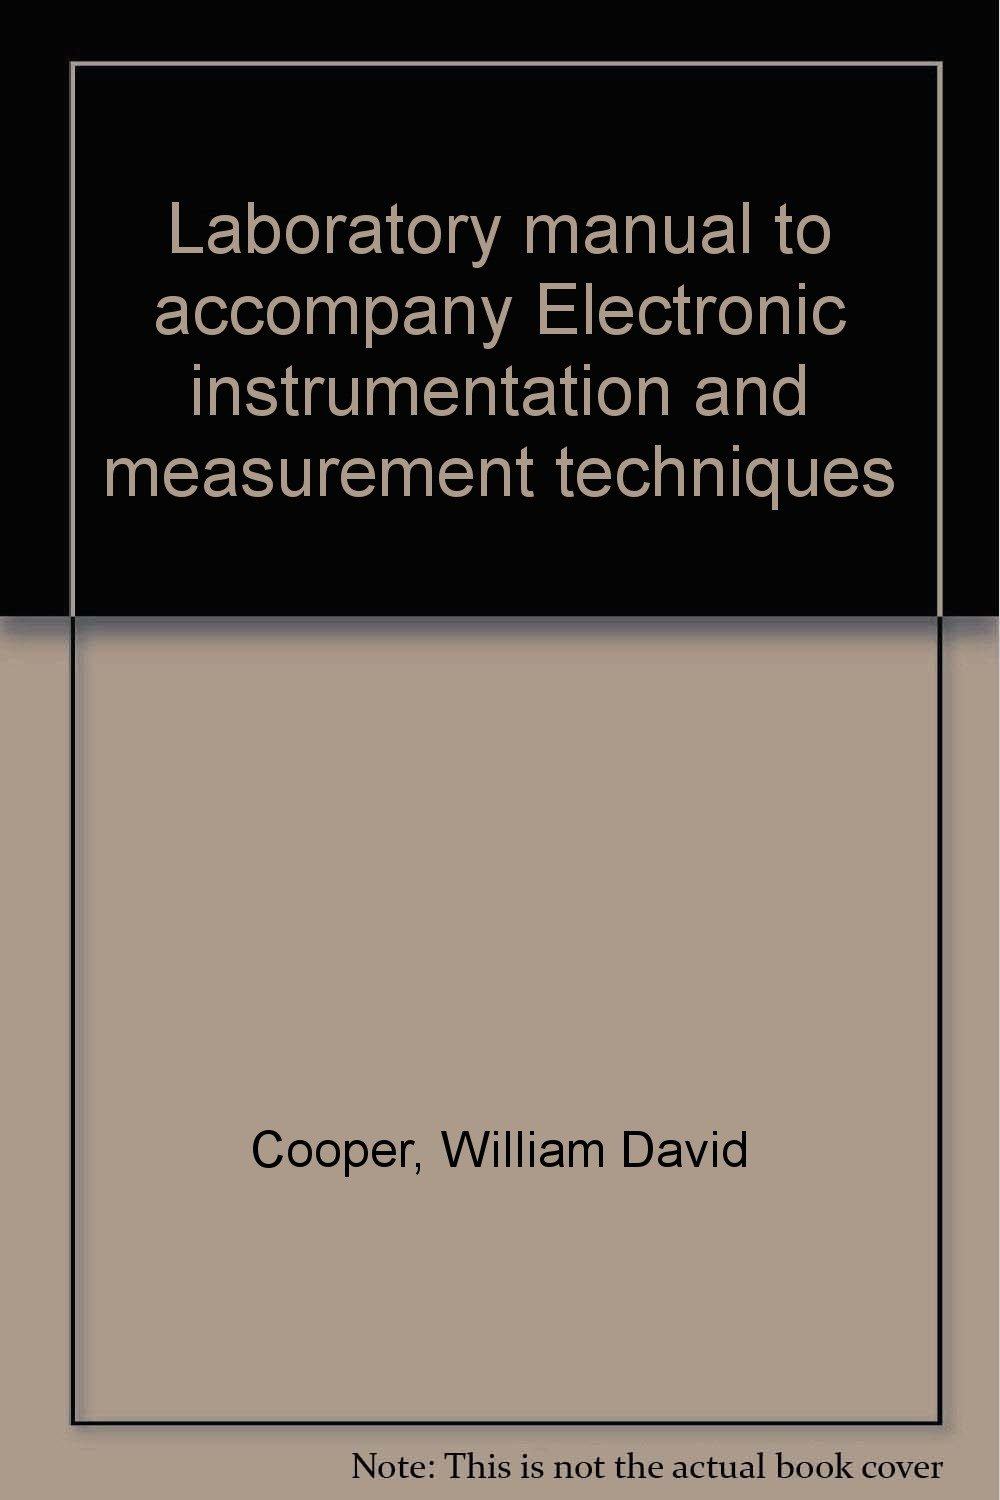 Laboratory manual to accompany Electronic instrumentation and measurement  techniques: William David Cooper: 9780132517027: Amazon.com: Books